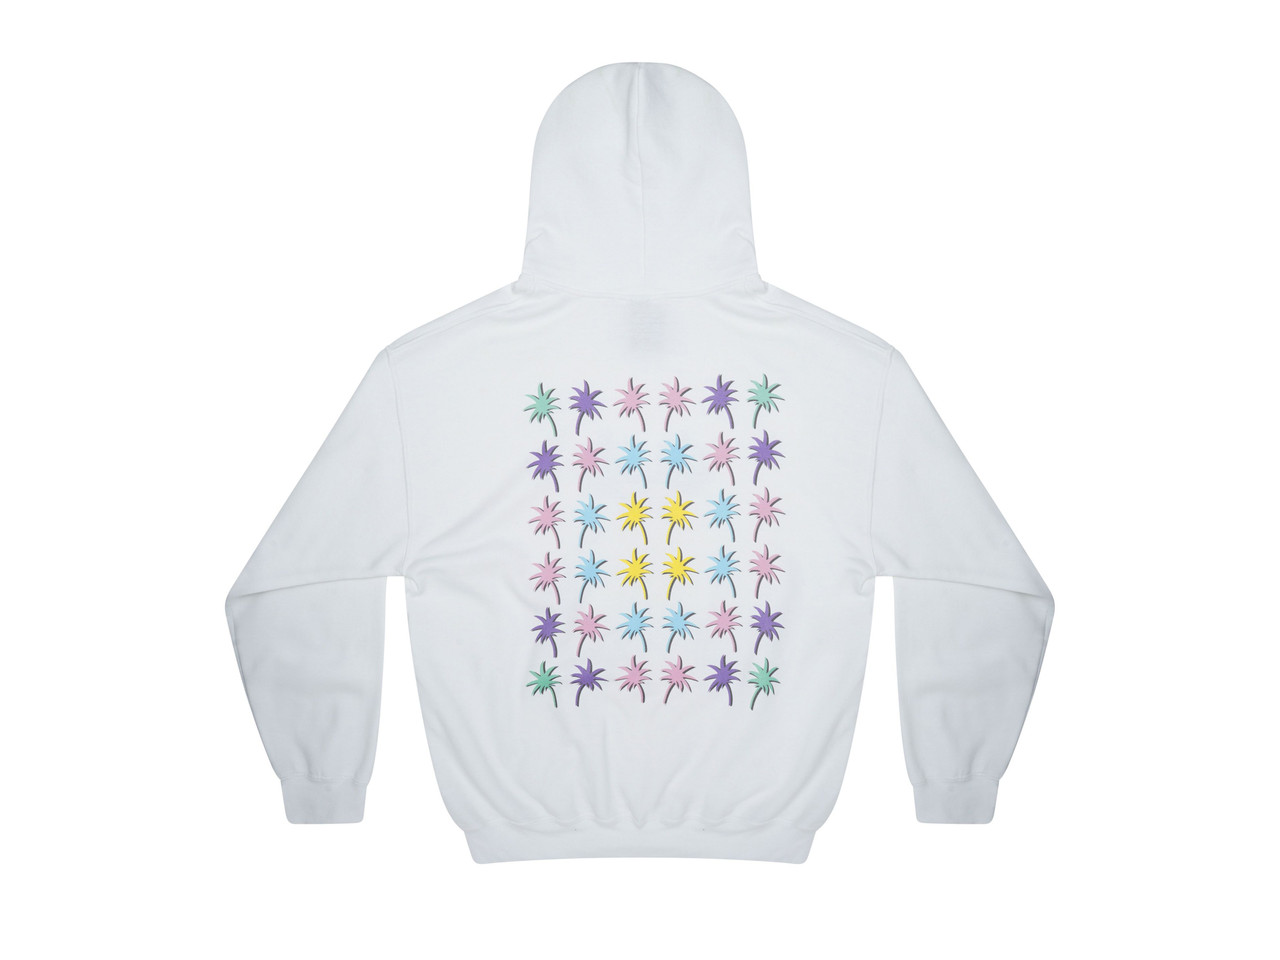 Hoodie In White With Tropical Palm Tree Print